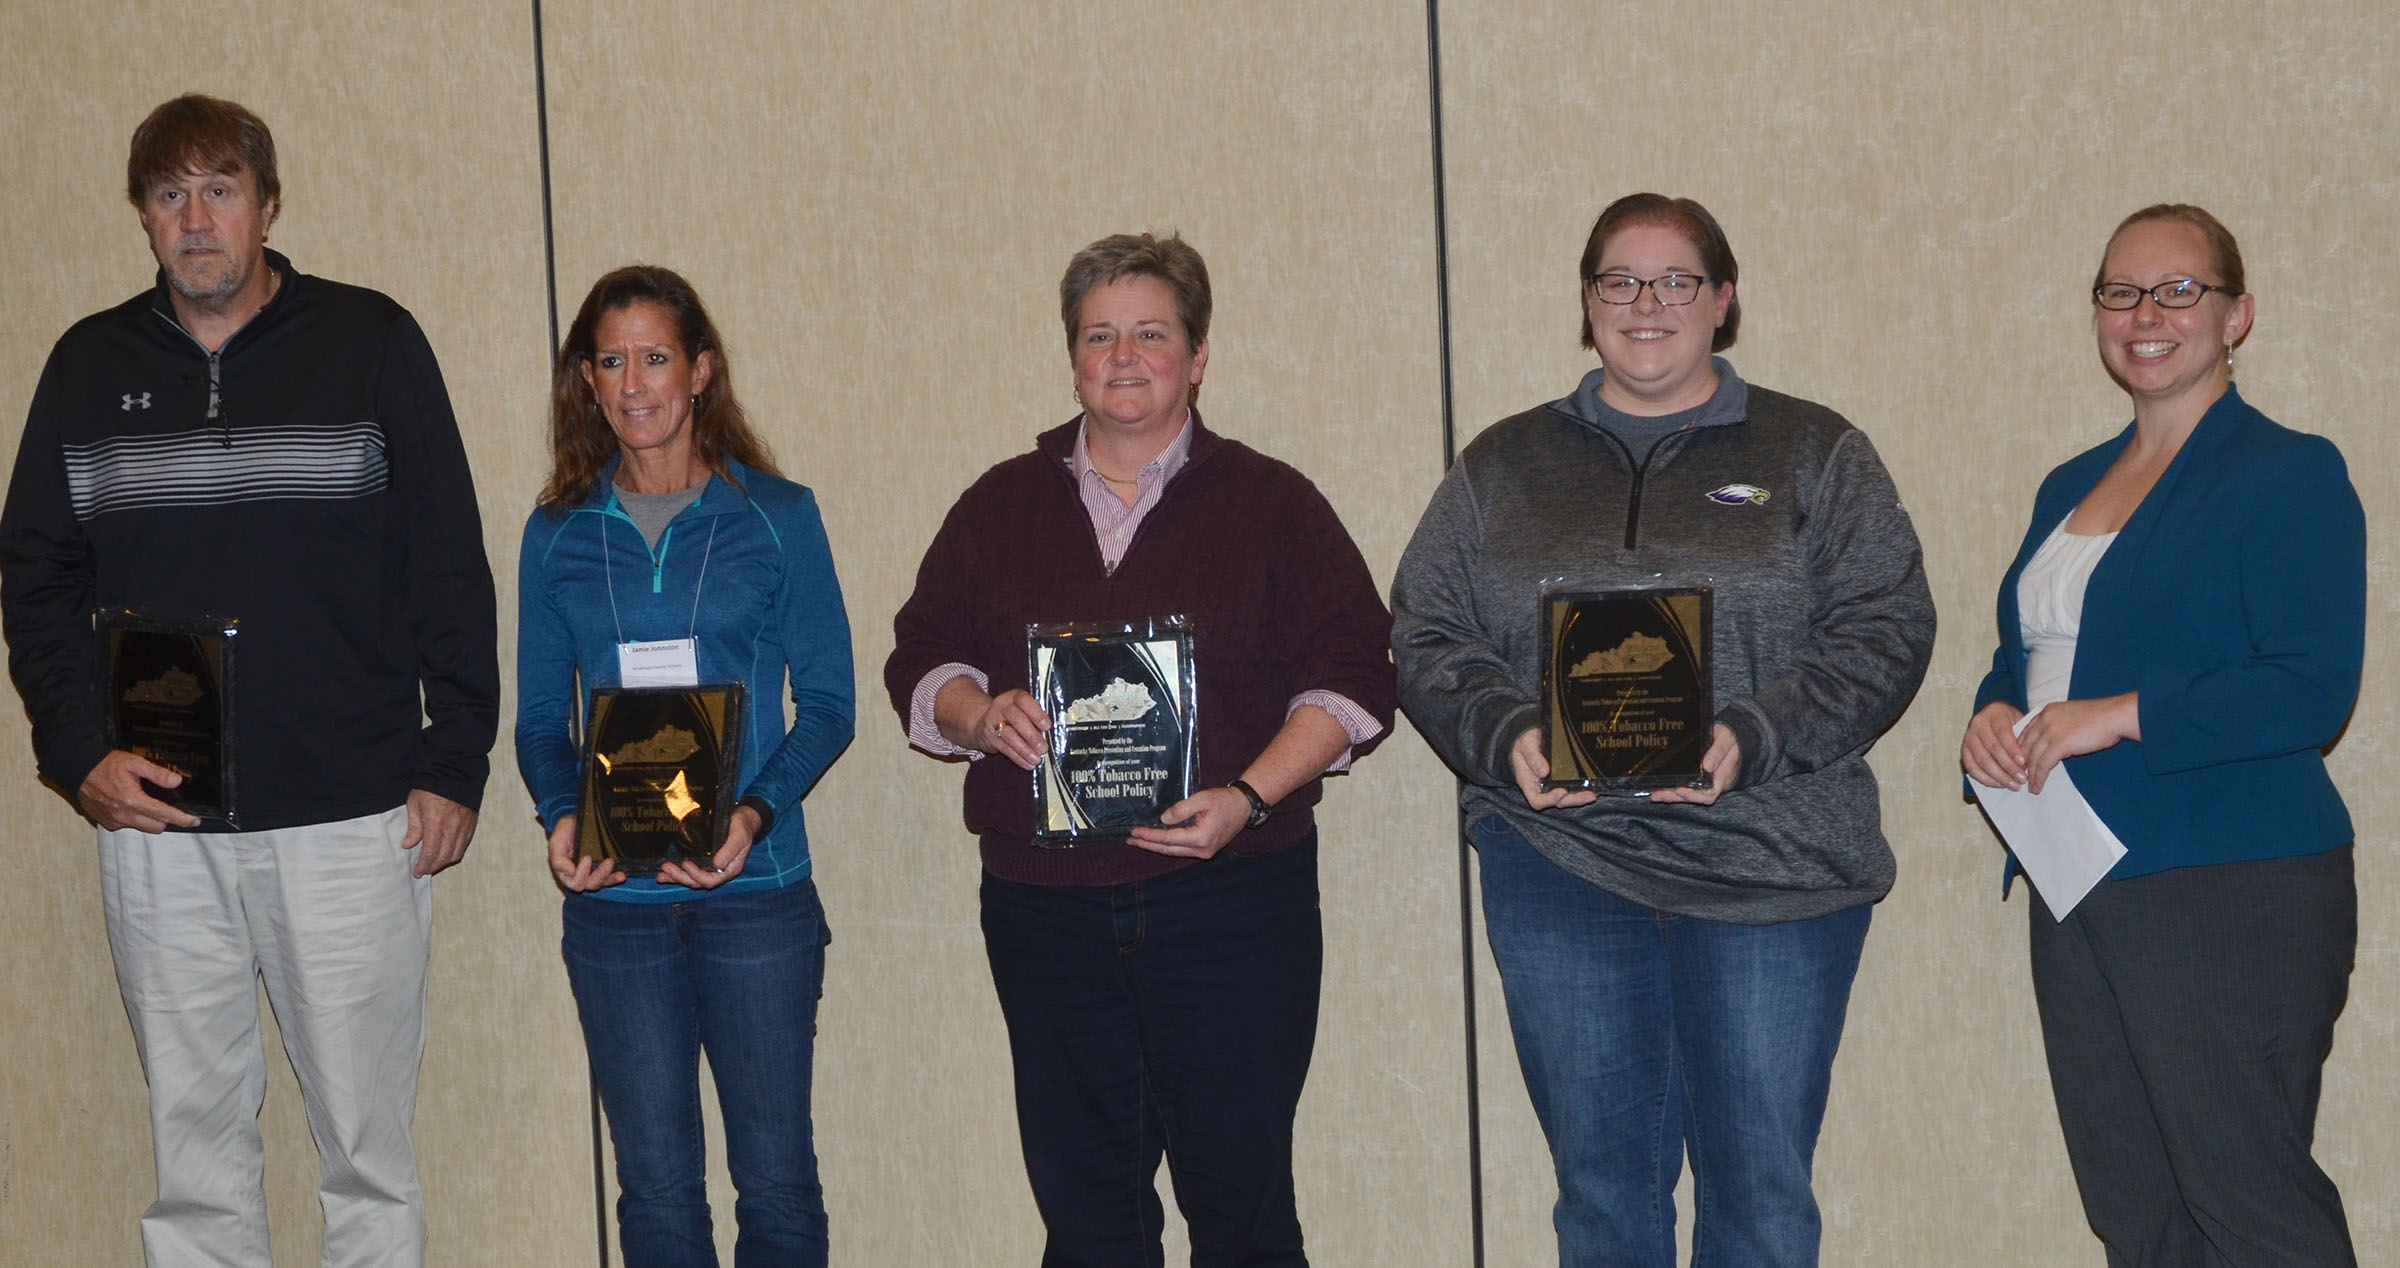 Calen McKinney, CIS public information officer, second from right, accepts the award on the District's behalf. At right is Elizabeth Anderson-Hoagland, youth tobacco prevention coordinator for the Kentucky Tobacco Prevention and Cessation Program, who honored the Kentucky public school districts that adopted a tobacco-free policy in 2016.